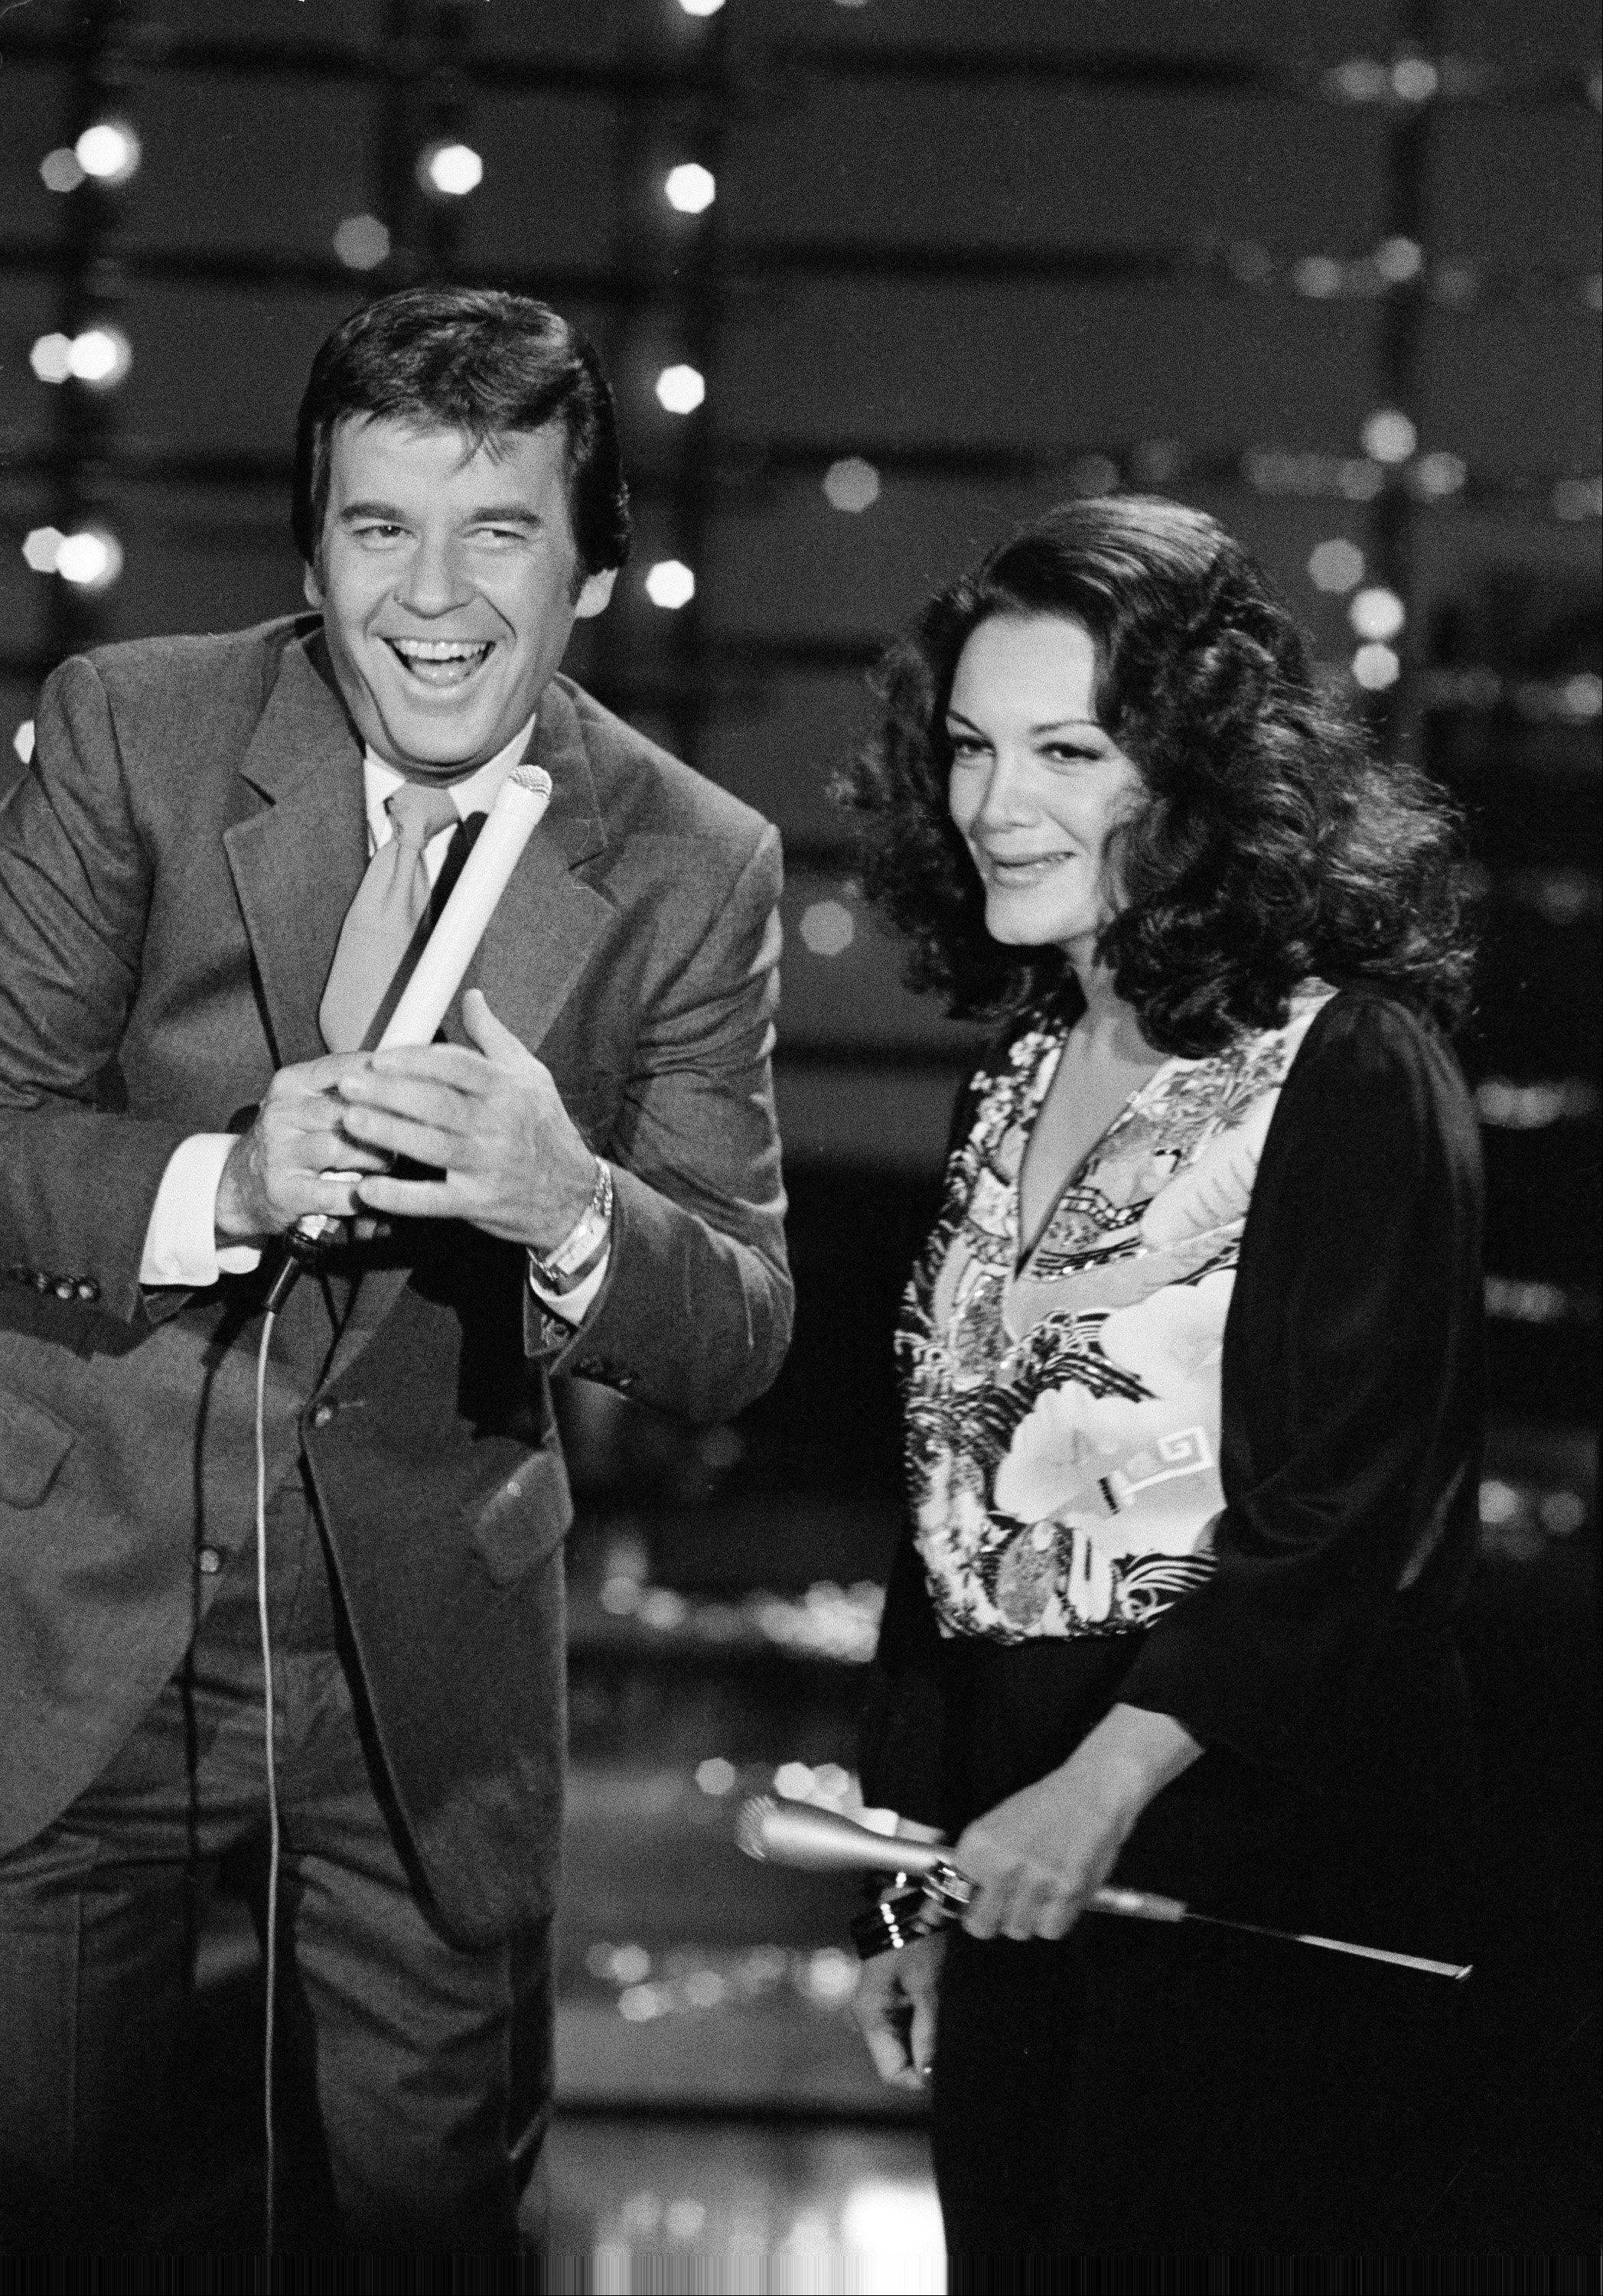 Host of American Bandstand Dick Clark, left, and his guest Connie Francis are shown during taping of the show in Los Angeles, Calif., Sunday, Dec. 9, 1980.